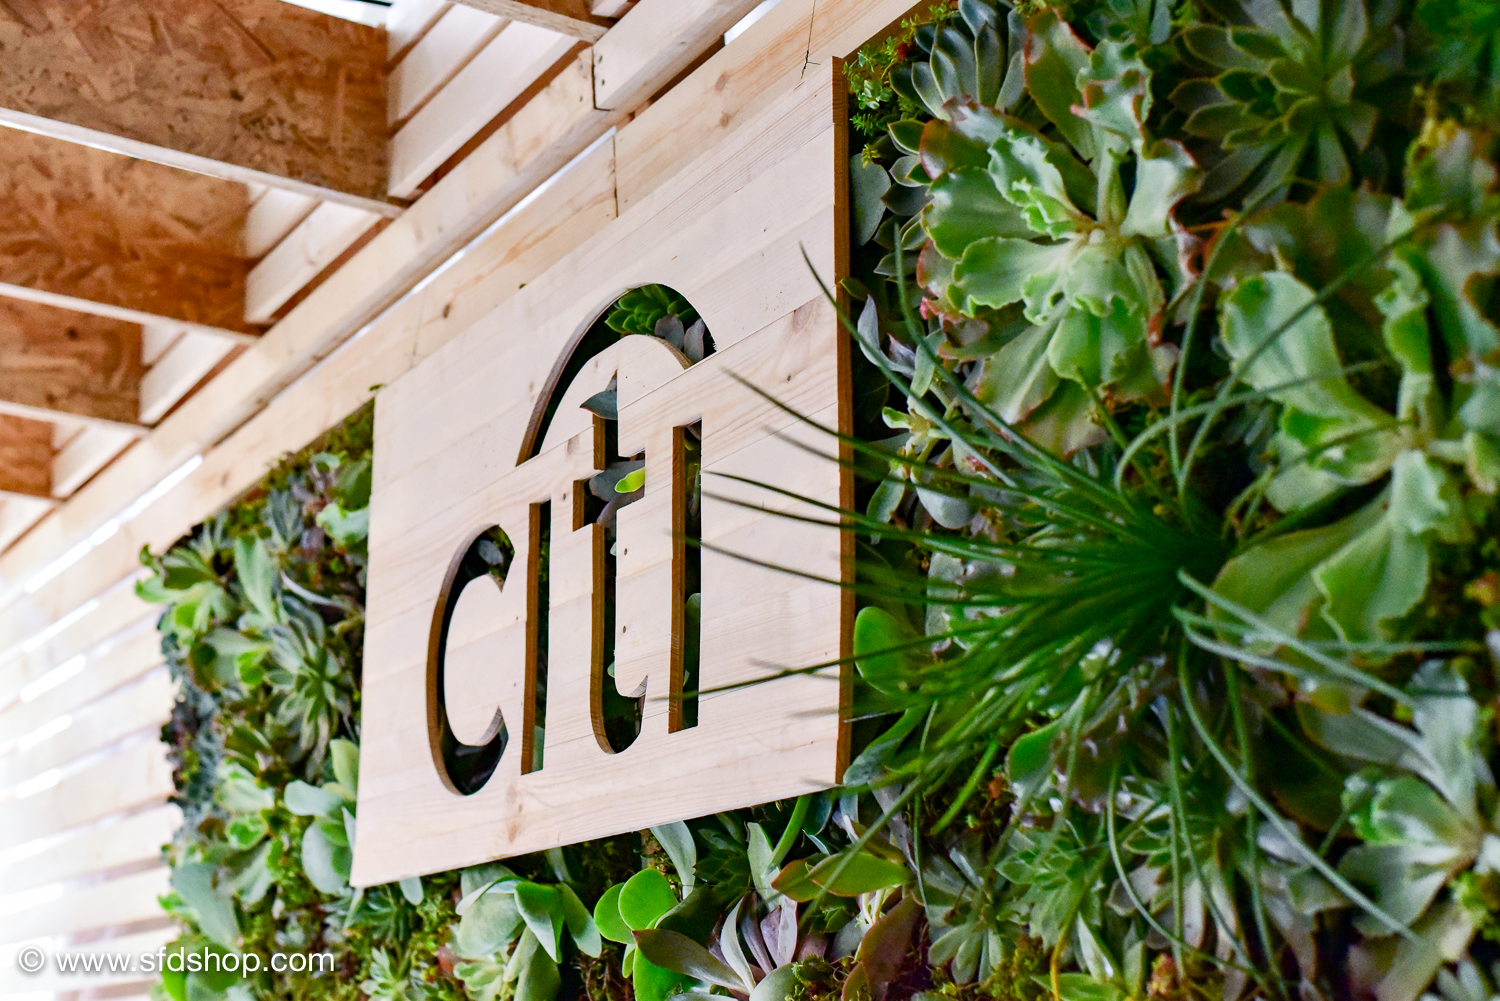 Citi Global Citizen Festival fabricated by SFDS-17.jpg